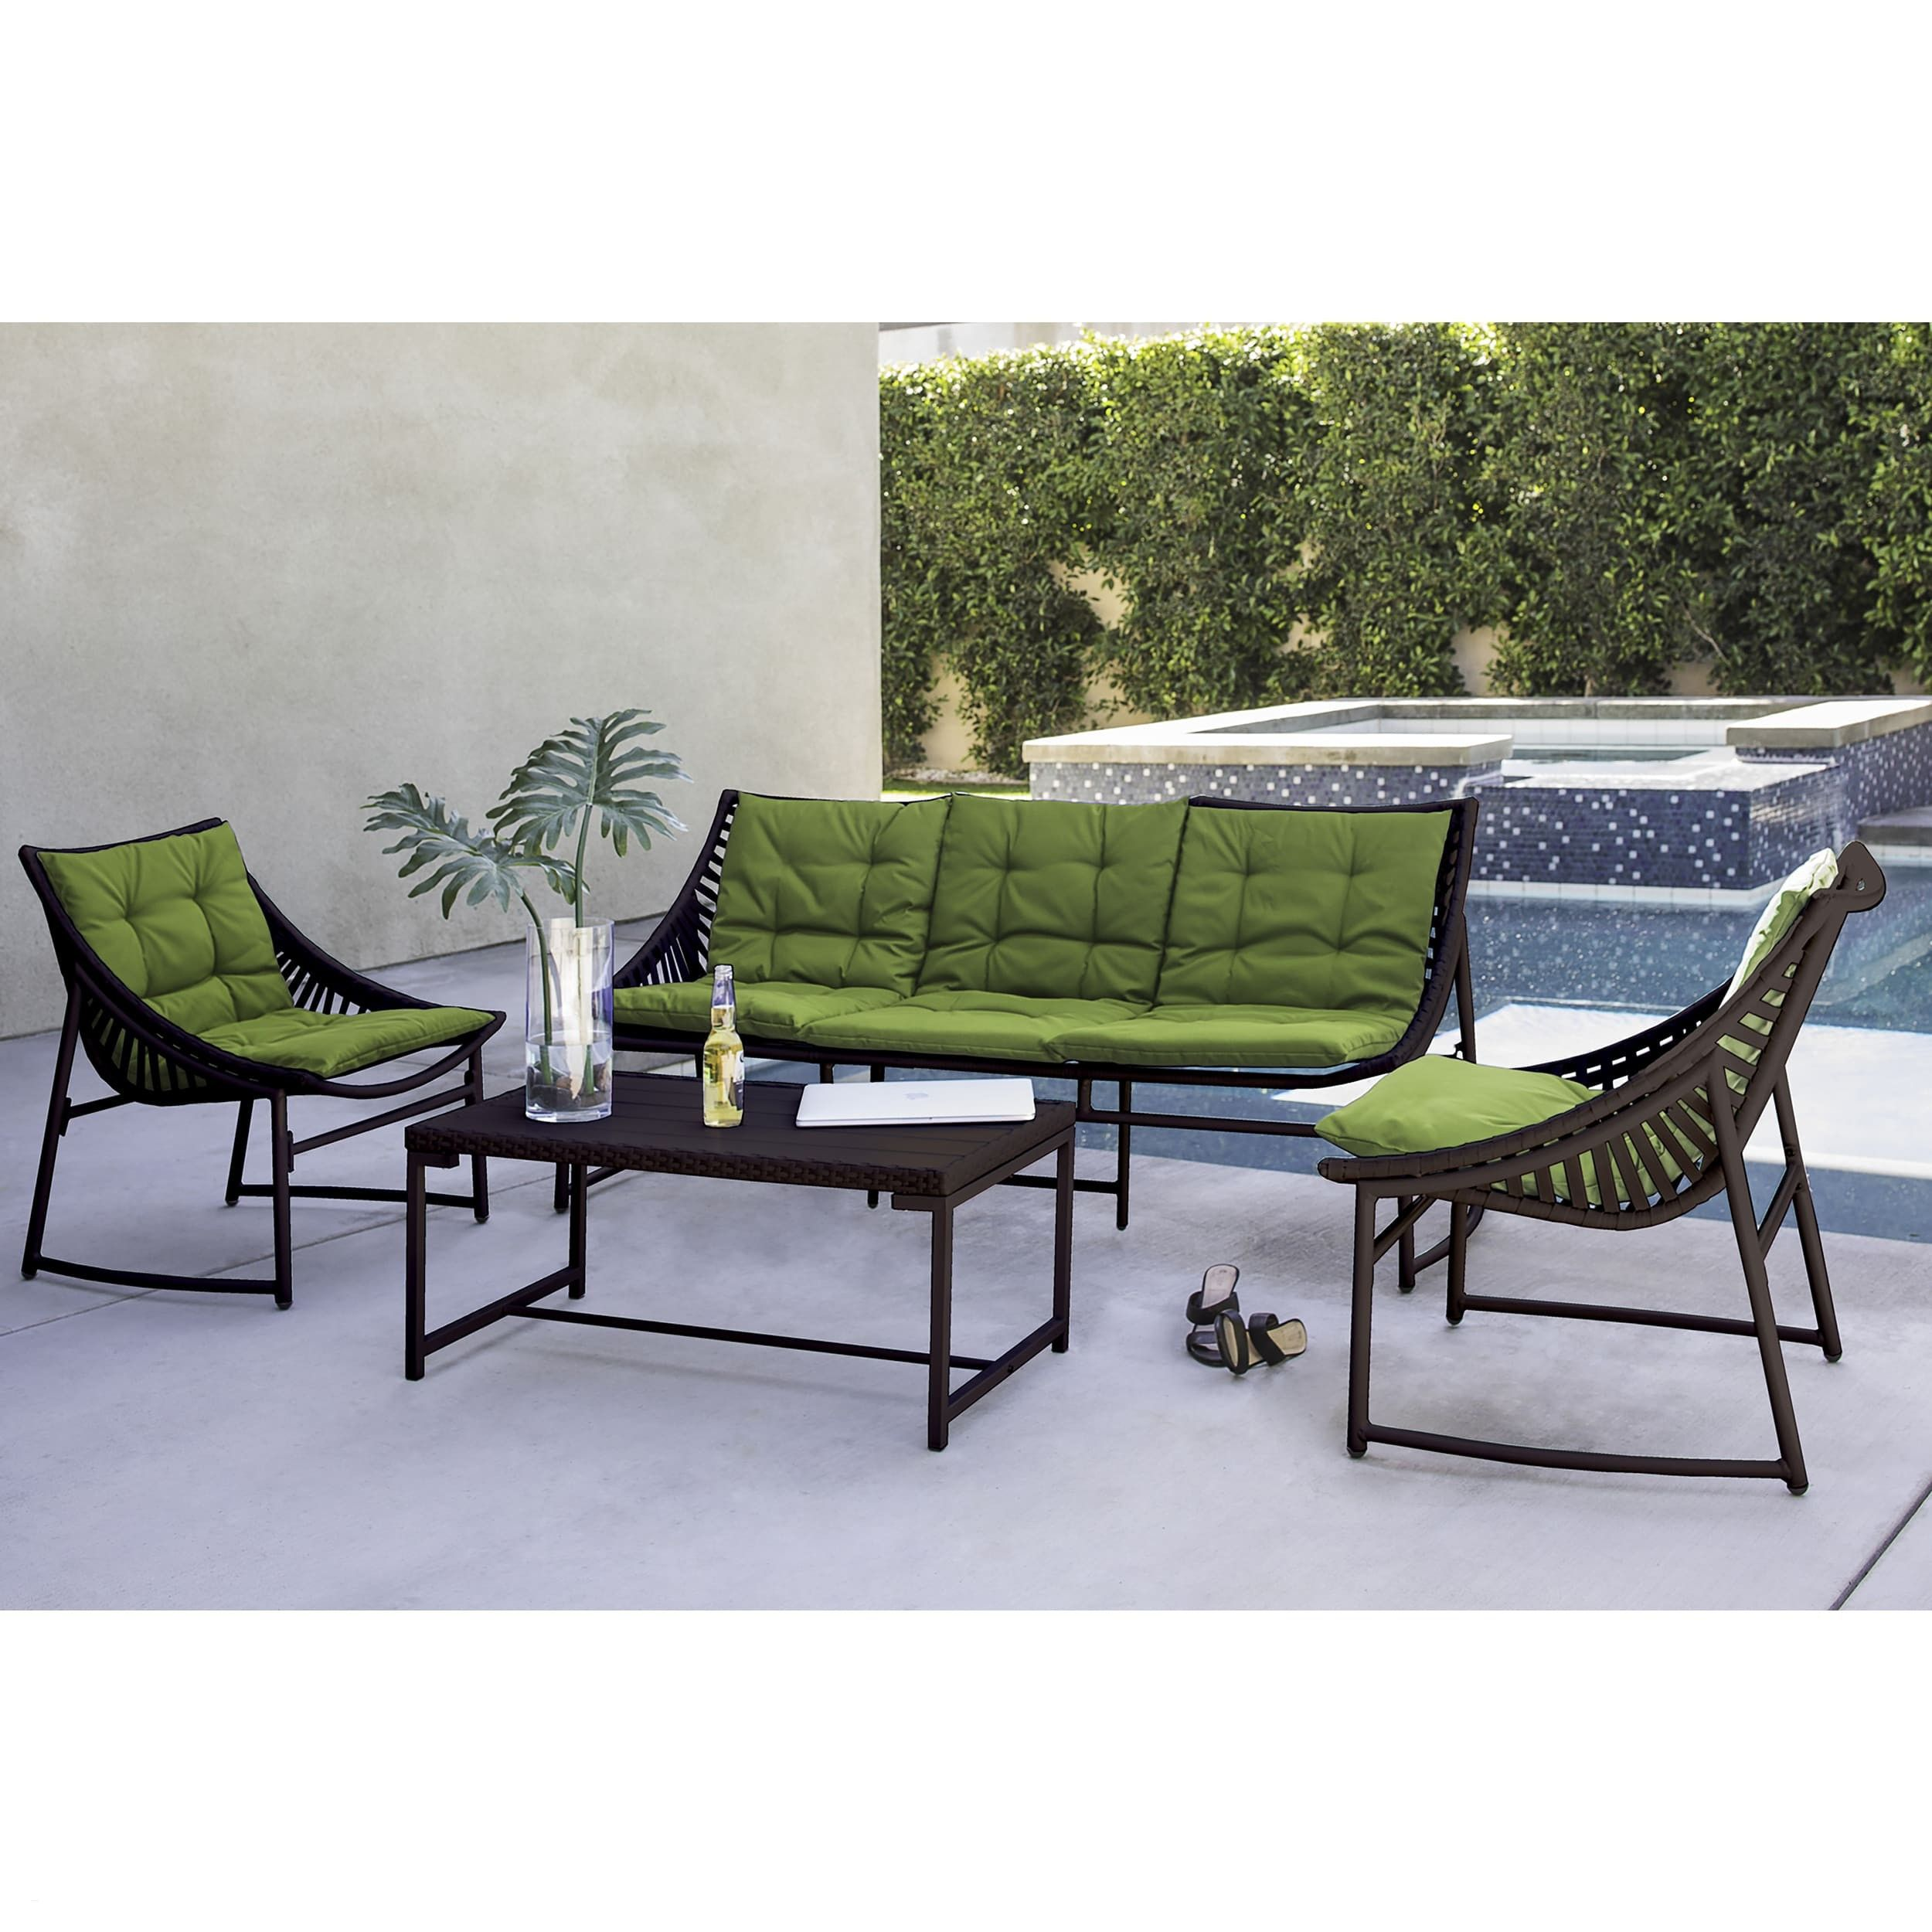 Coleman Patio Furniture Replacement Slings Patio Ideas Patio